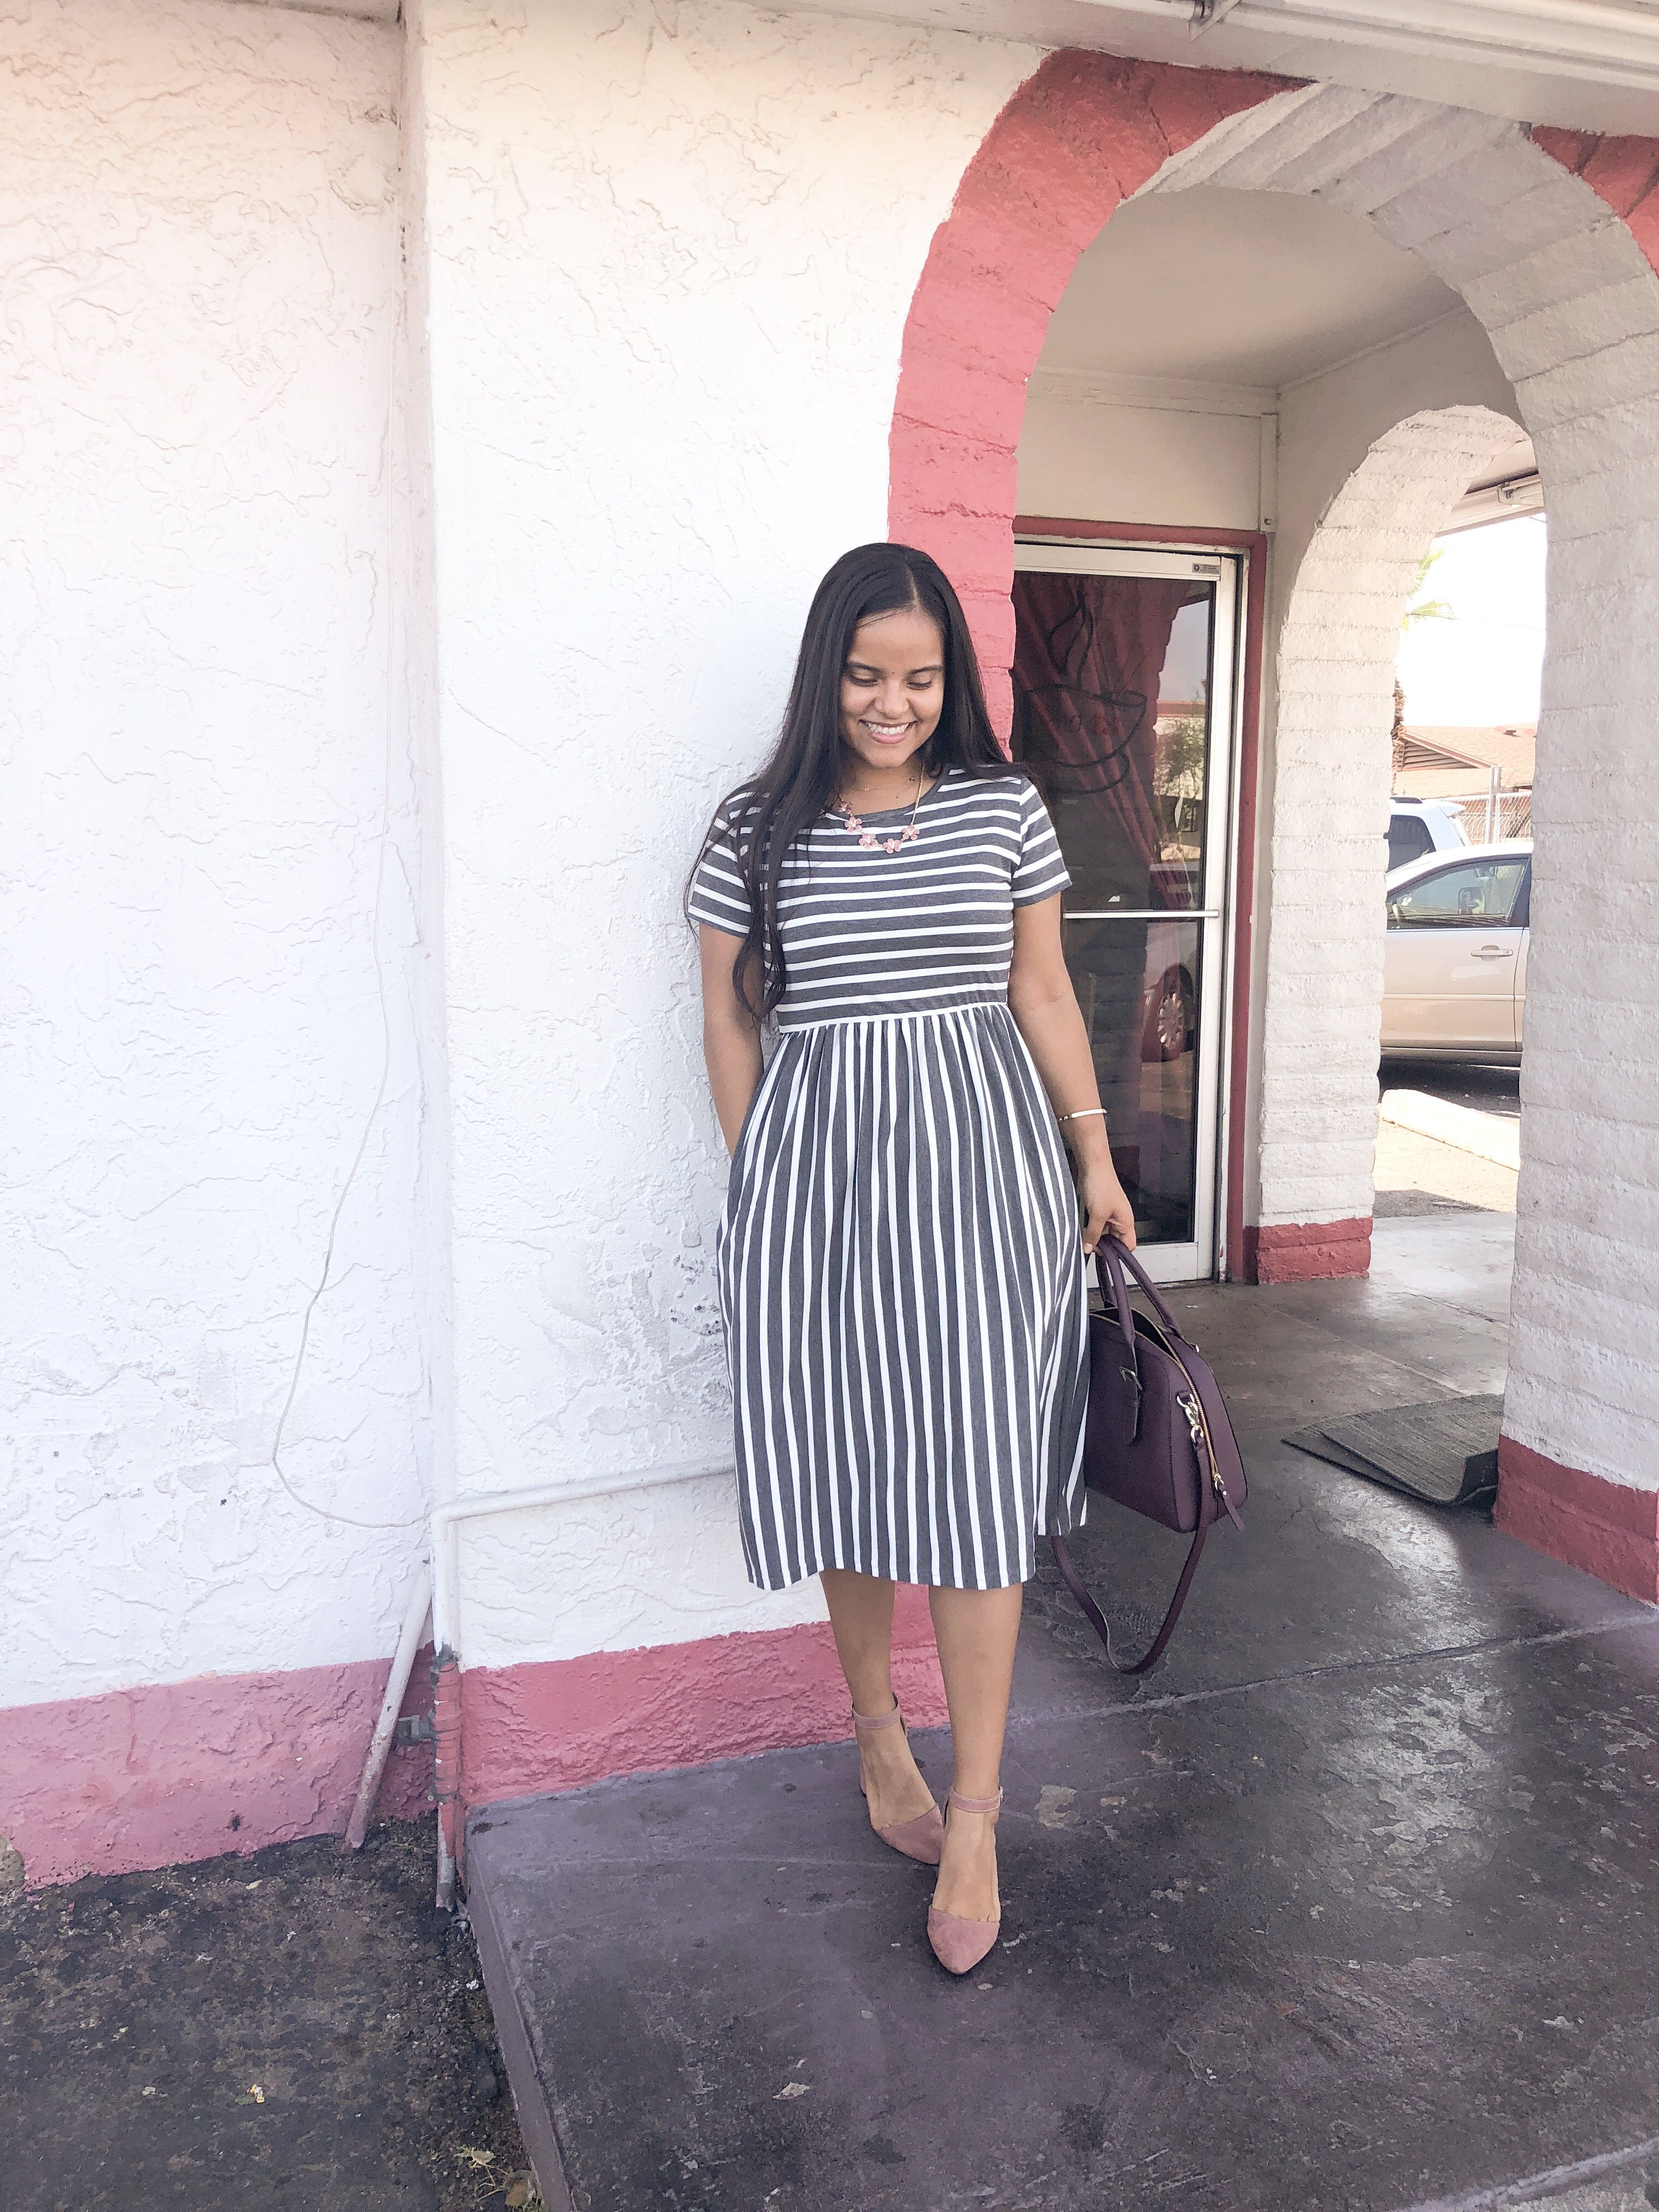 Dress is from @Tickledteal #sundaybest #dresses #stripes #churchoutfit